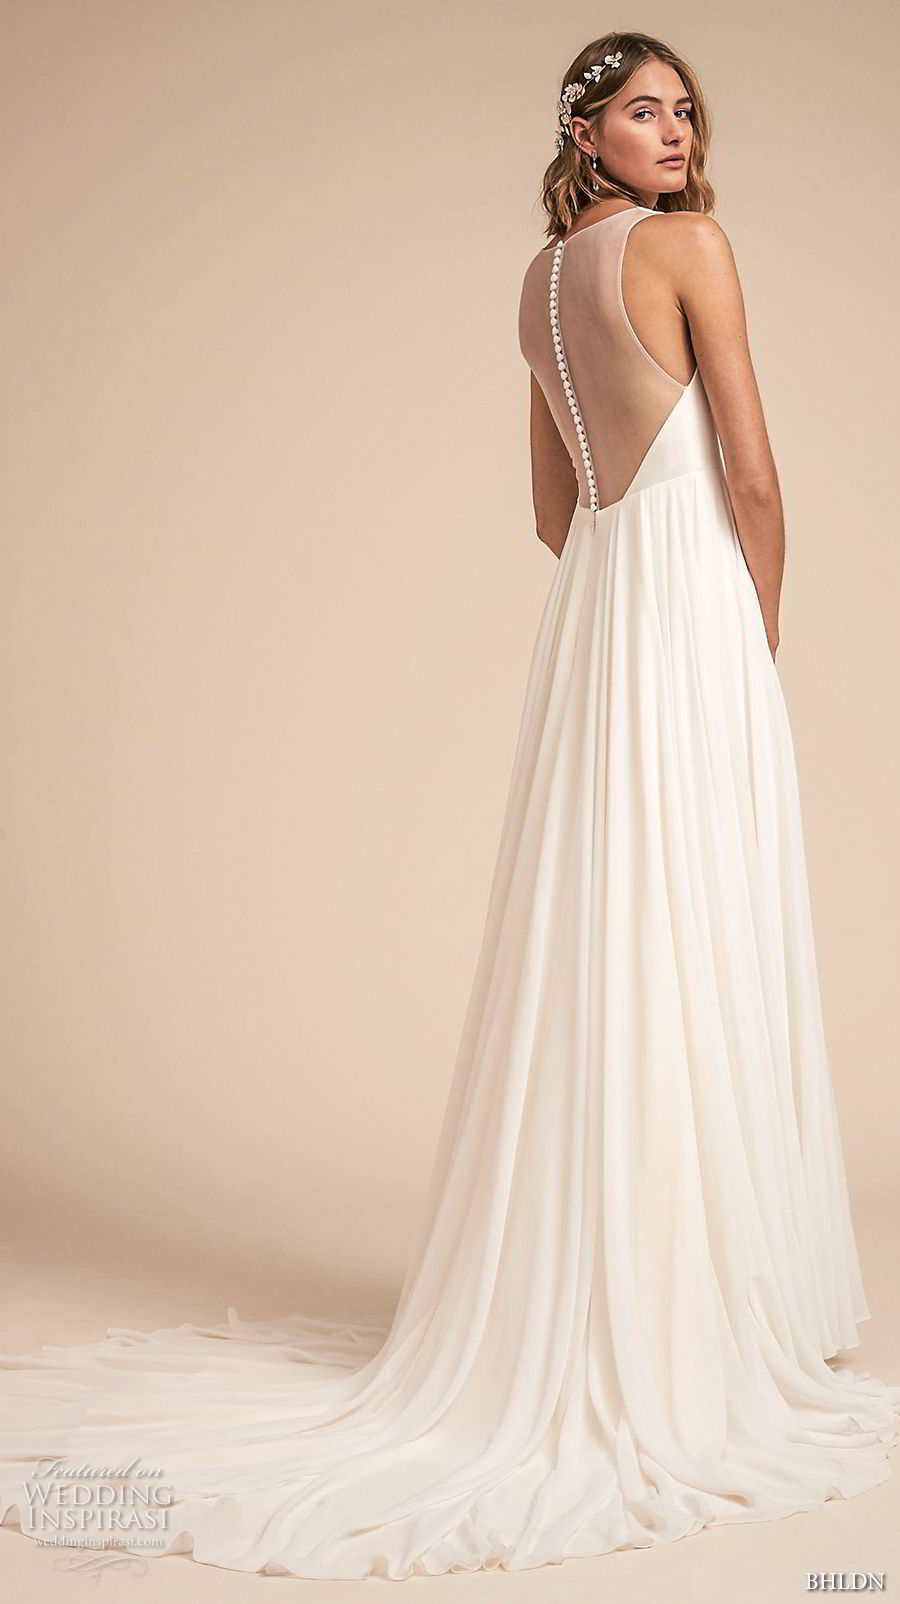 bhldn spring 2018 bridal sleeveless deep v neck simple clean bodice a  line wedding dress sheer button back chapel train (21) bv